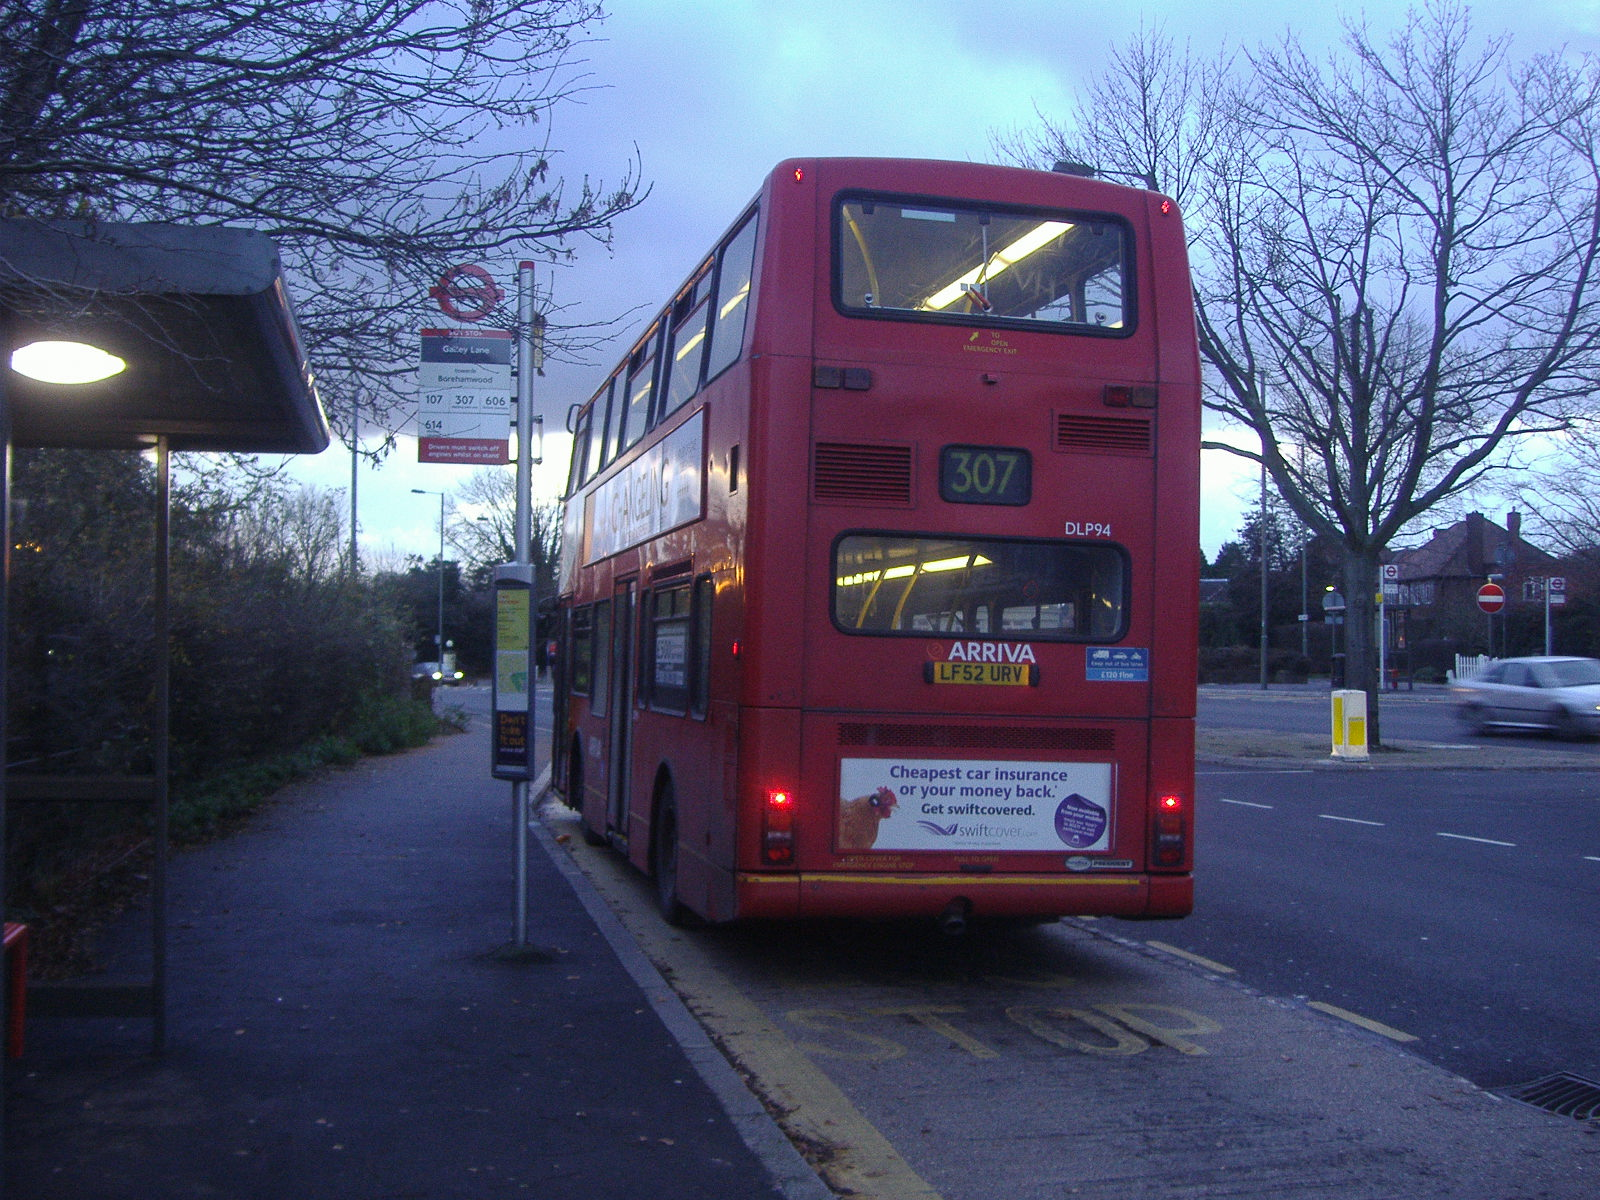 file:london bus route 307 barnet - wikimedia commons